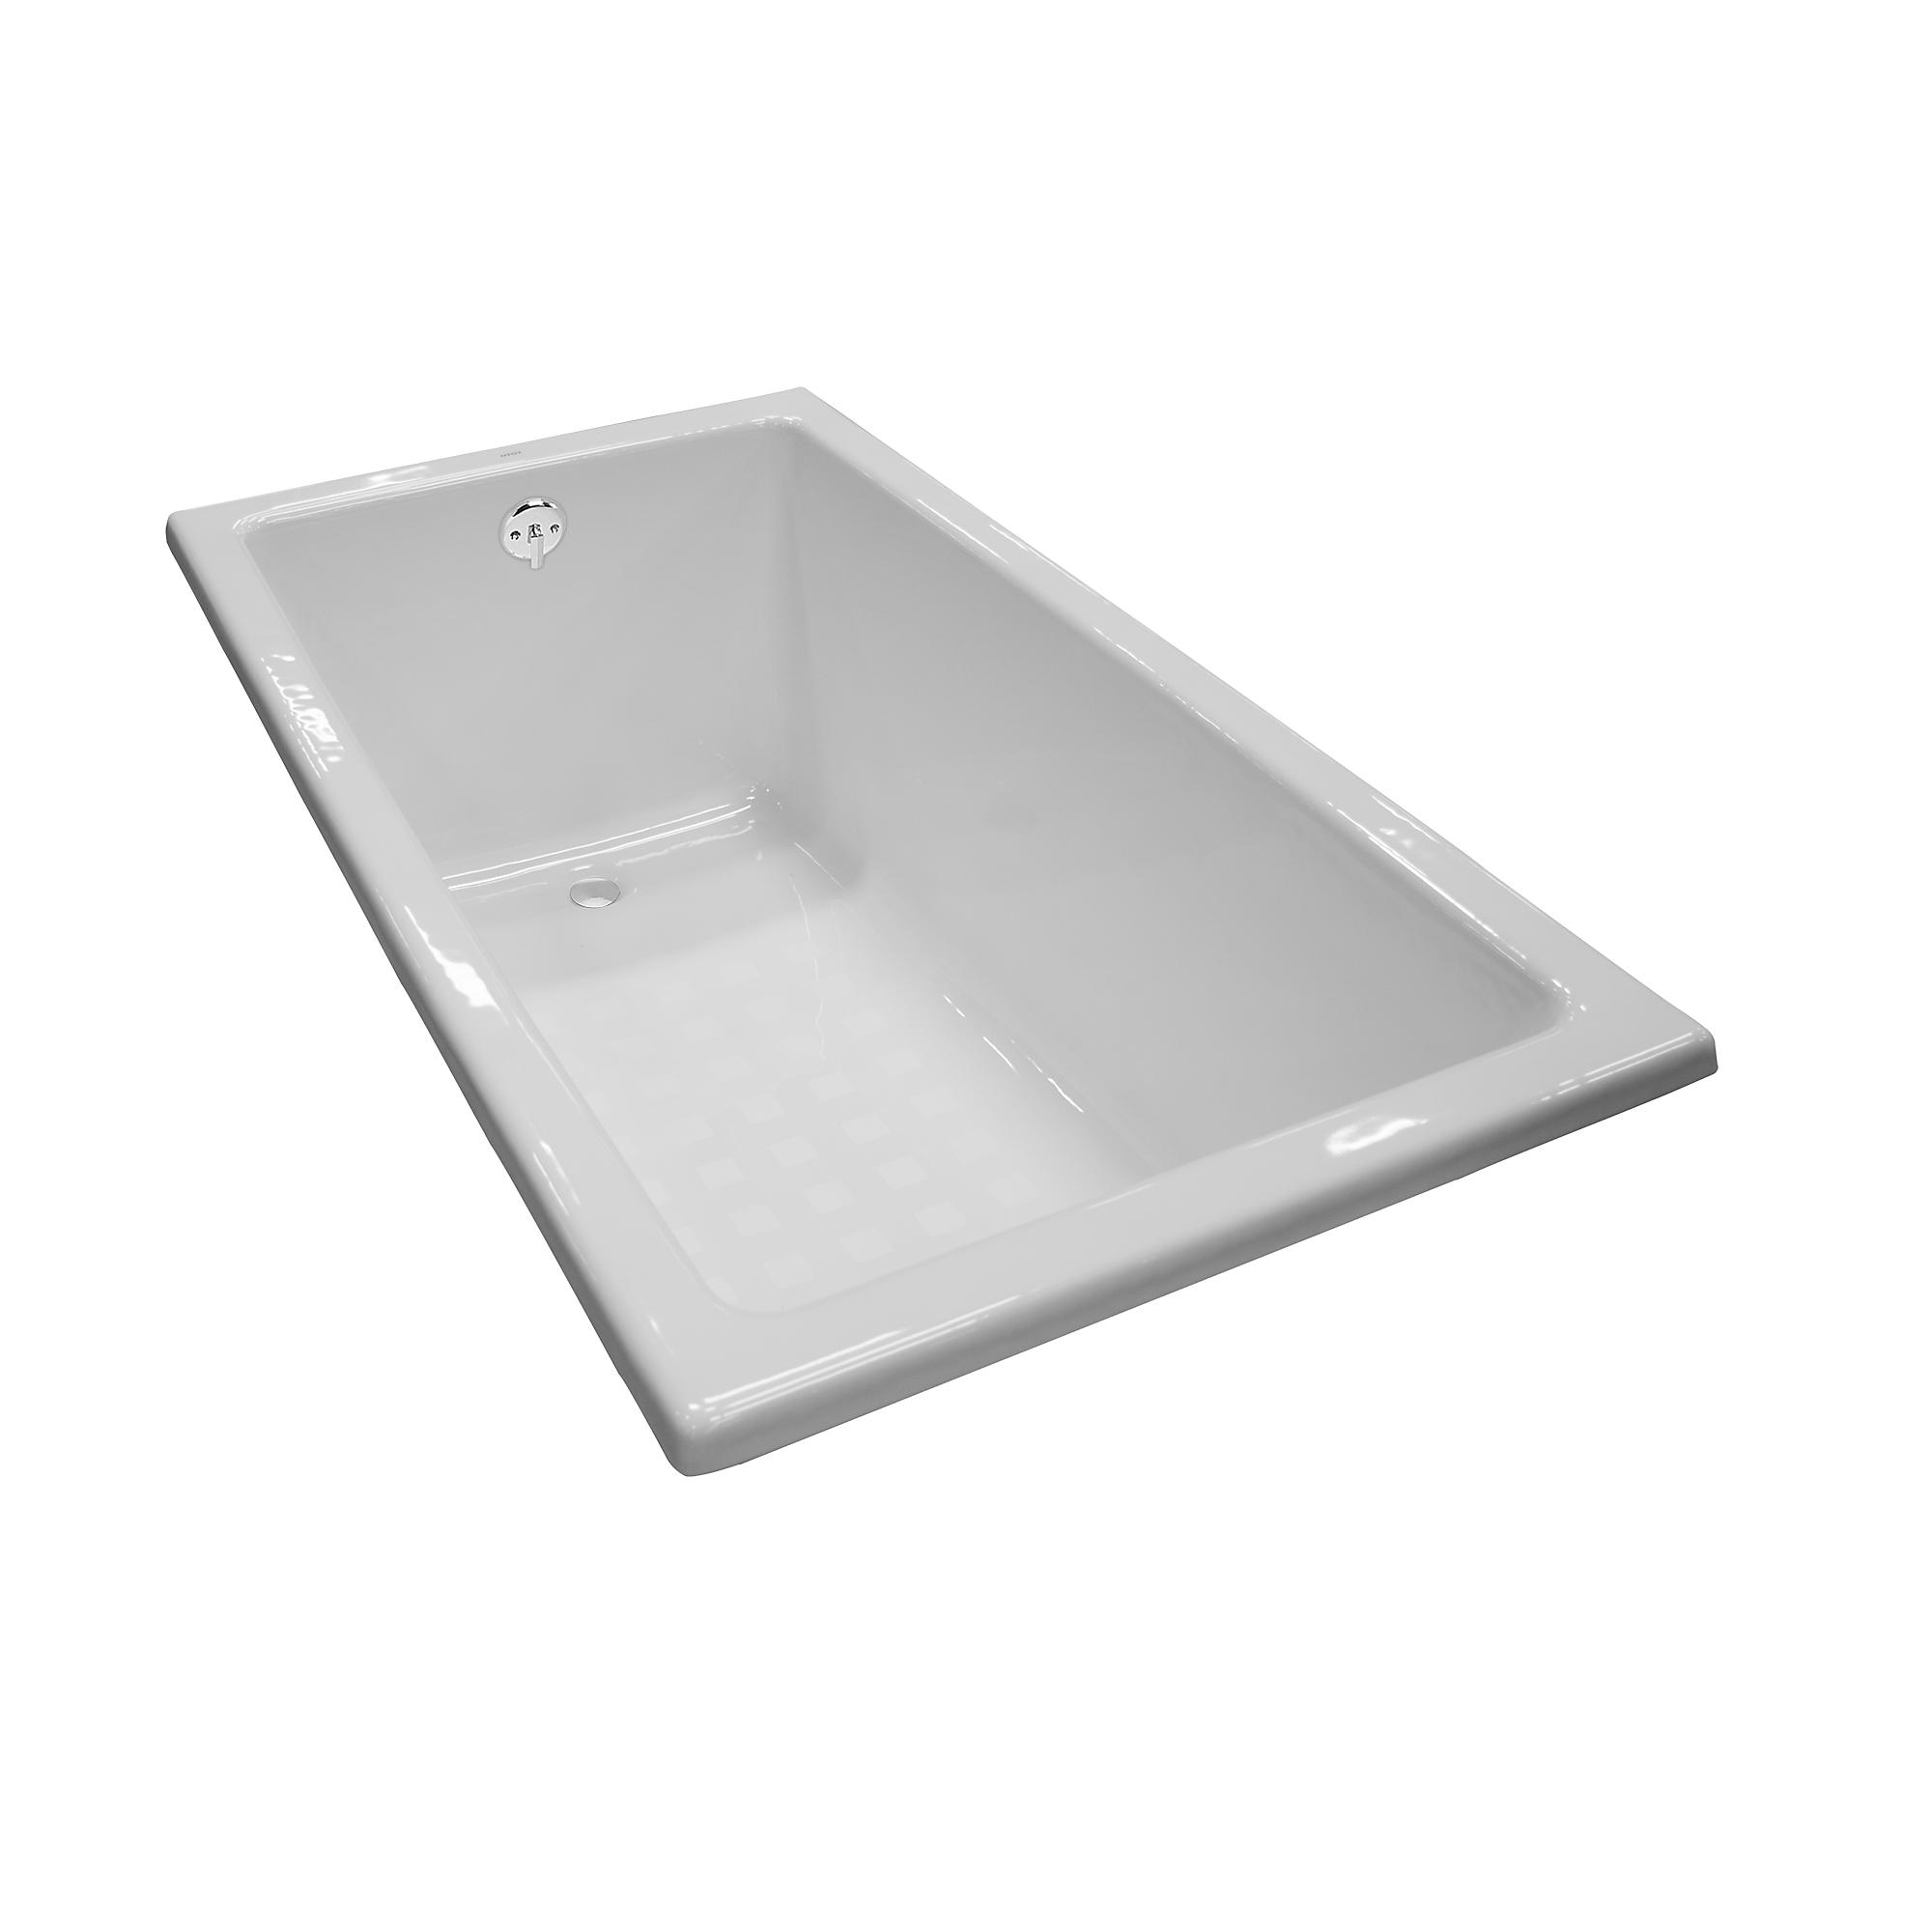 Fby1550p 01 enameled cast iron bathtub 59 1 16  x 31 1 2  x 23 1 4  0